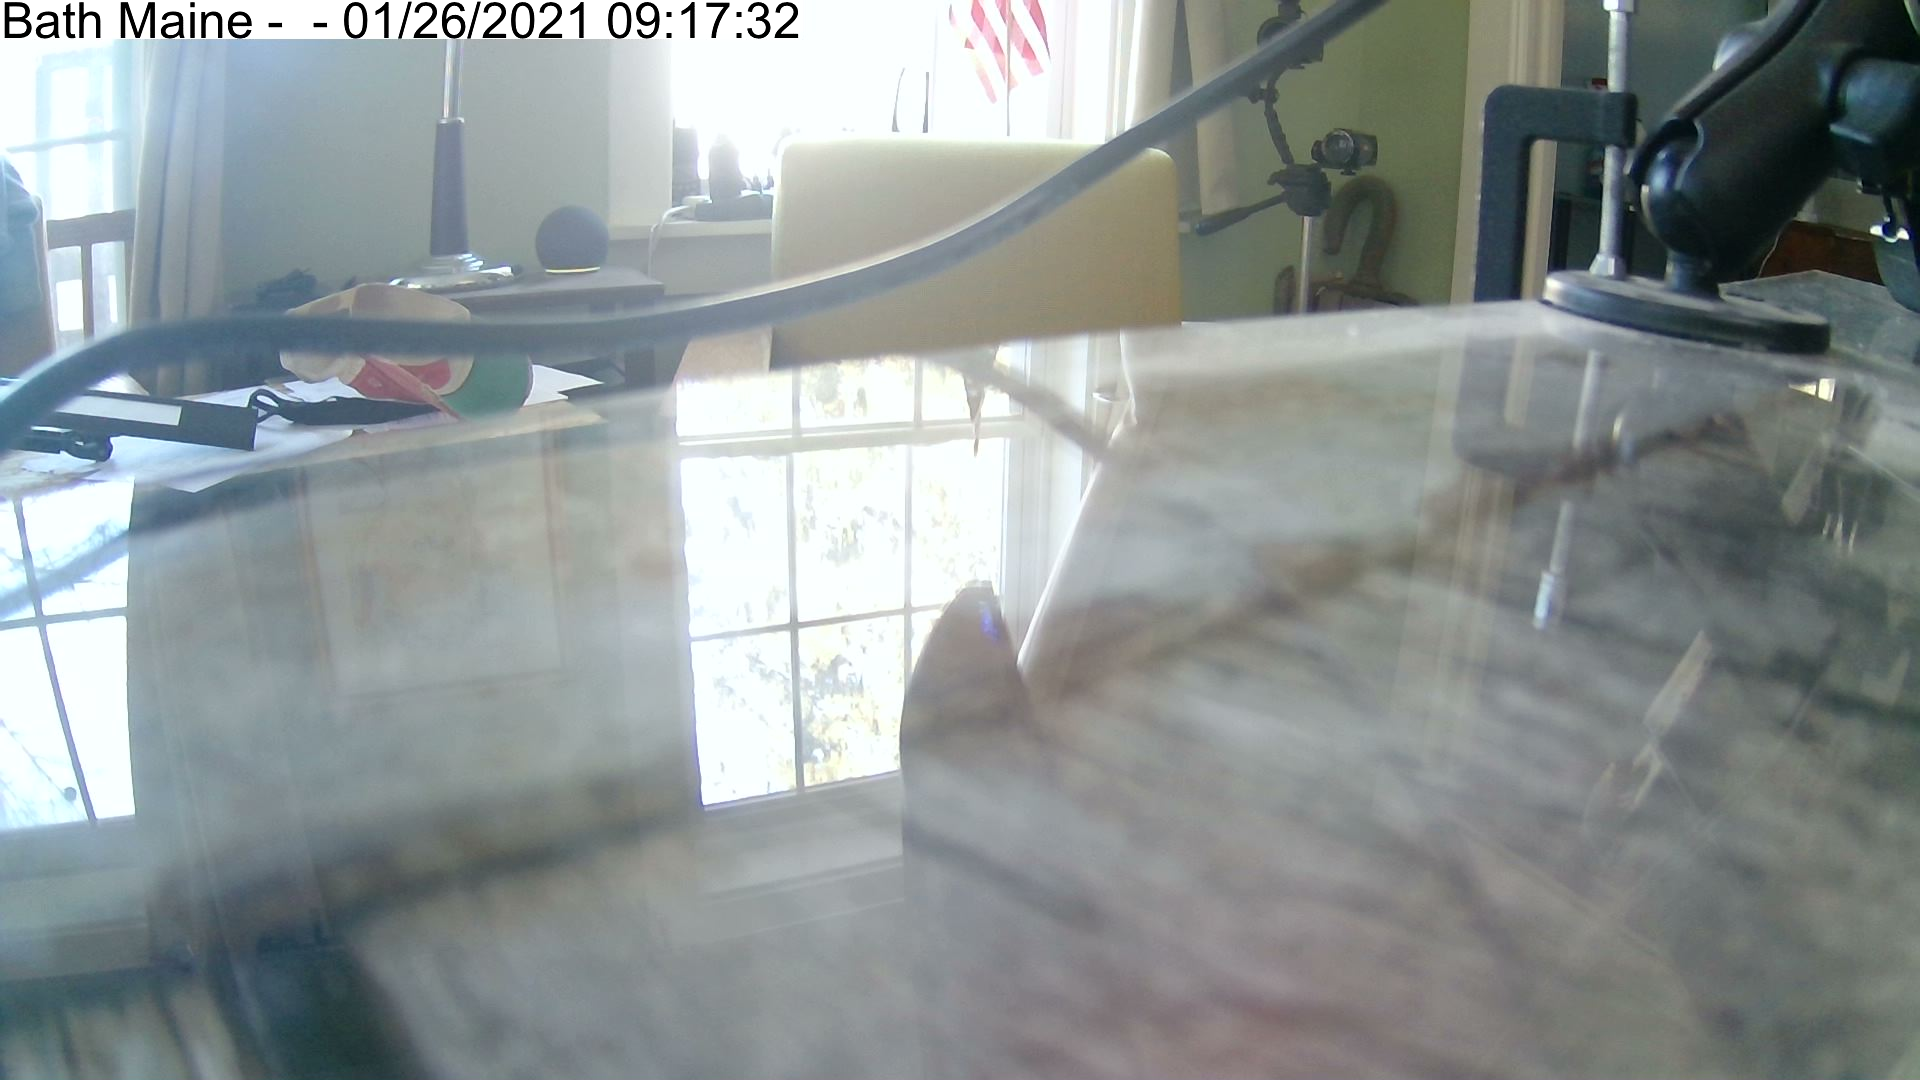 Bath Maine Webcams